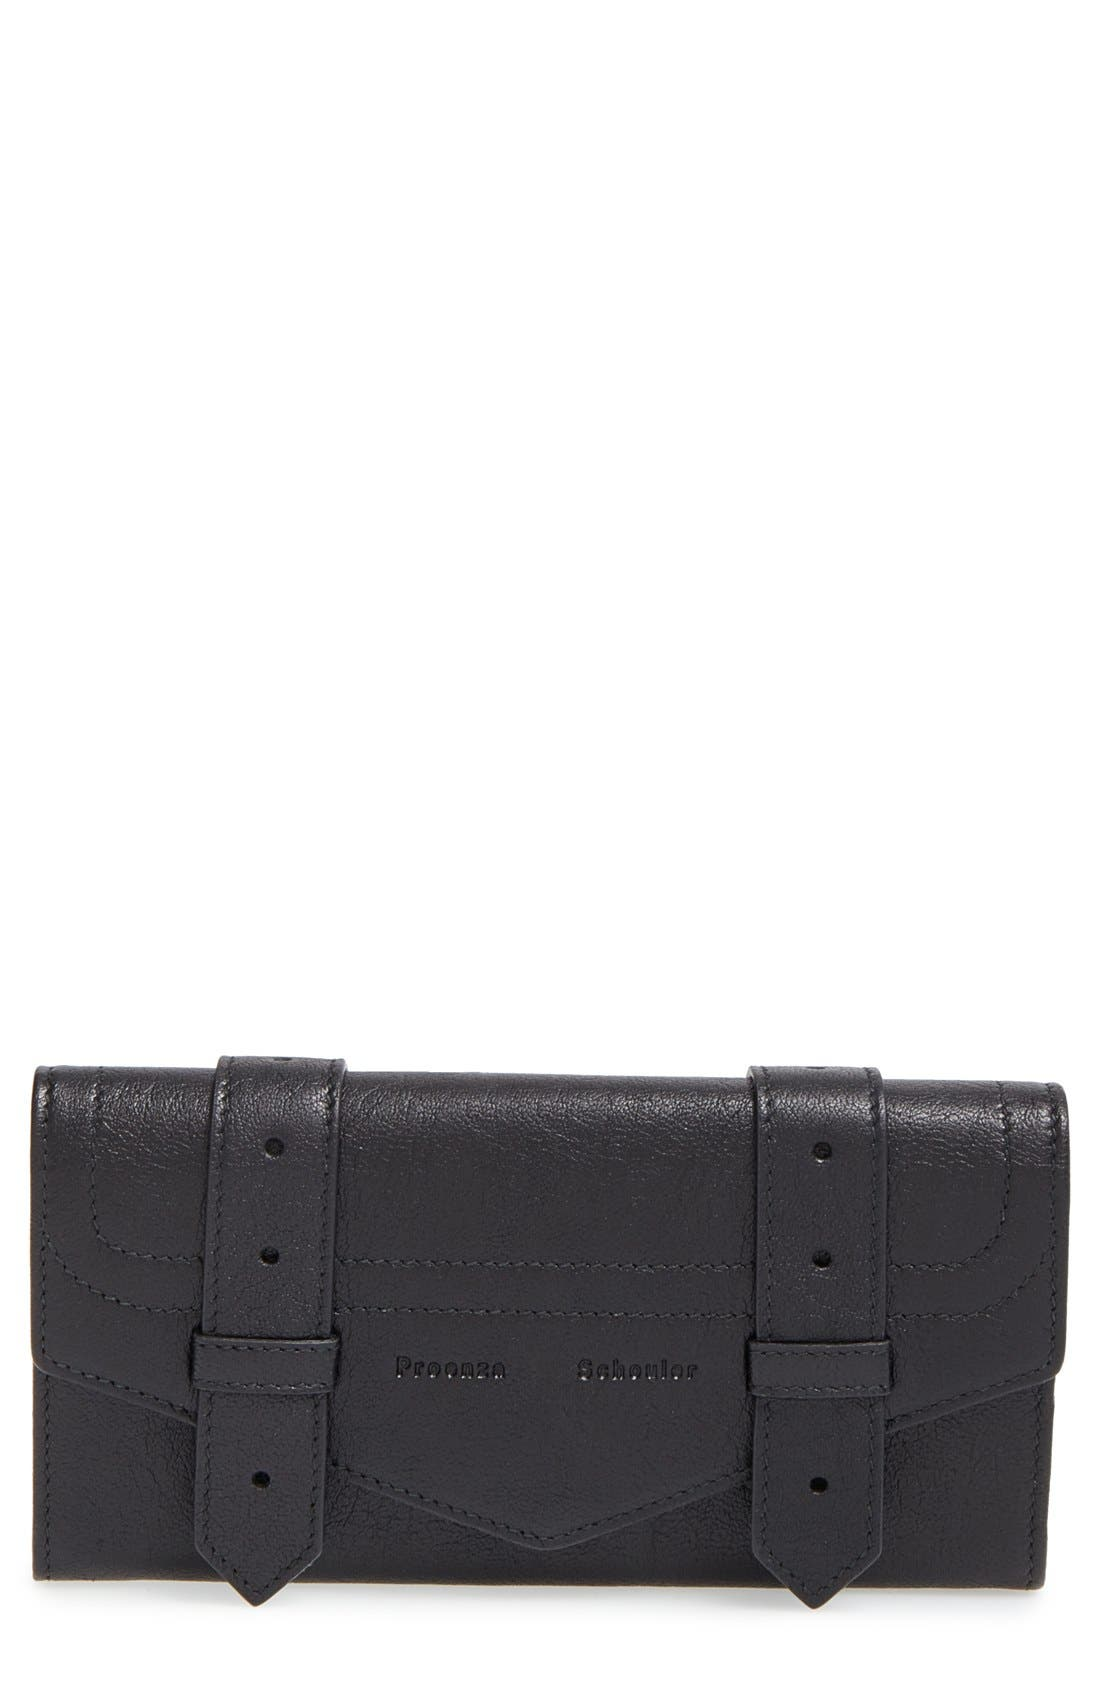 Main Image - Proenza Schouler 'PS1' Continental Wallet